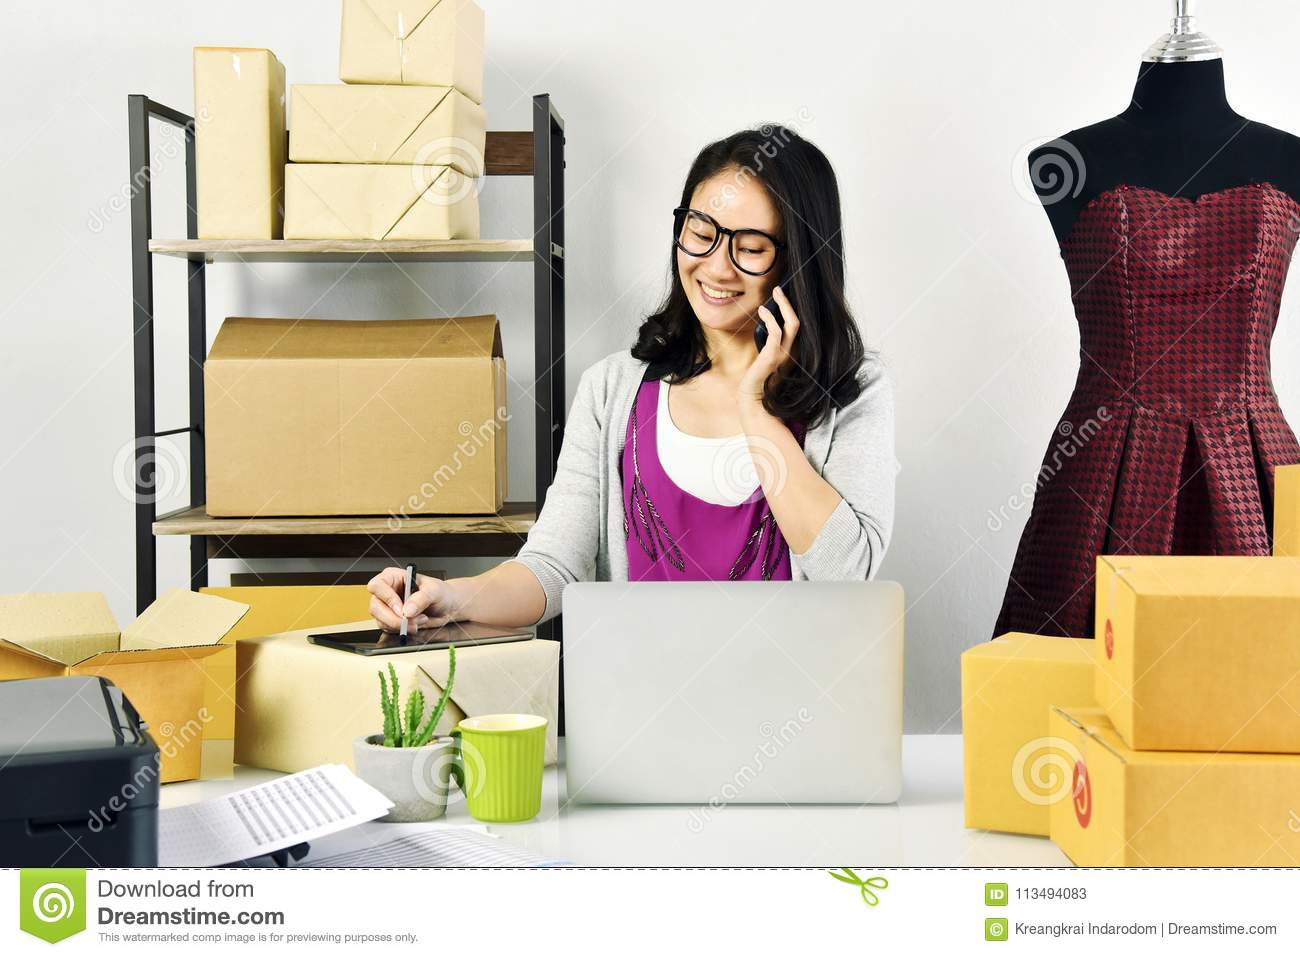 Online business, Young asian woman work at home for e-business commerce, Small business owner checking and packing online order.